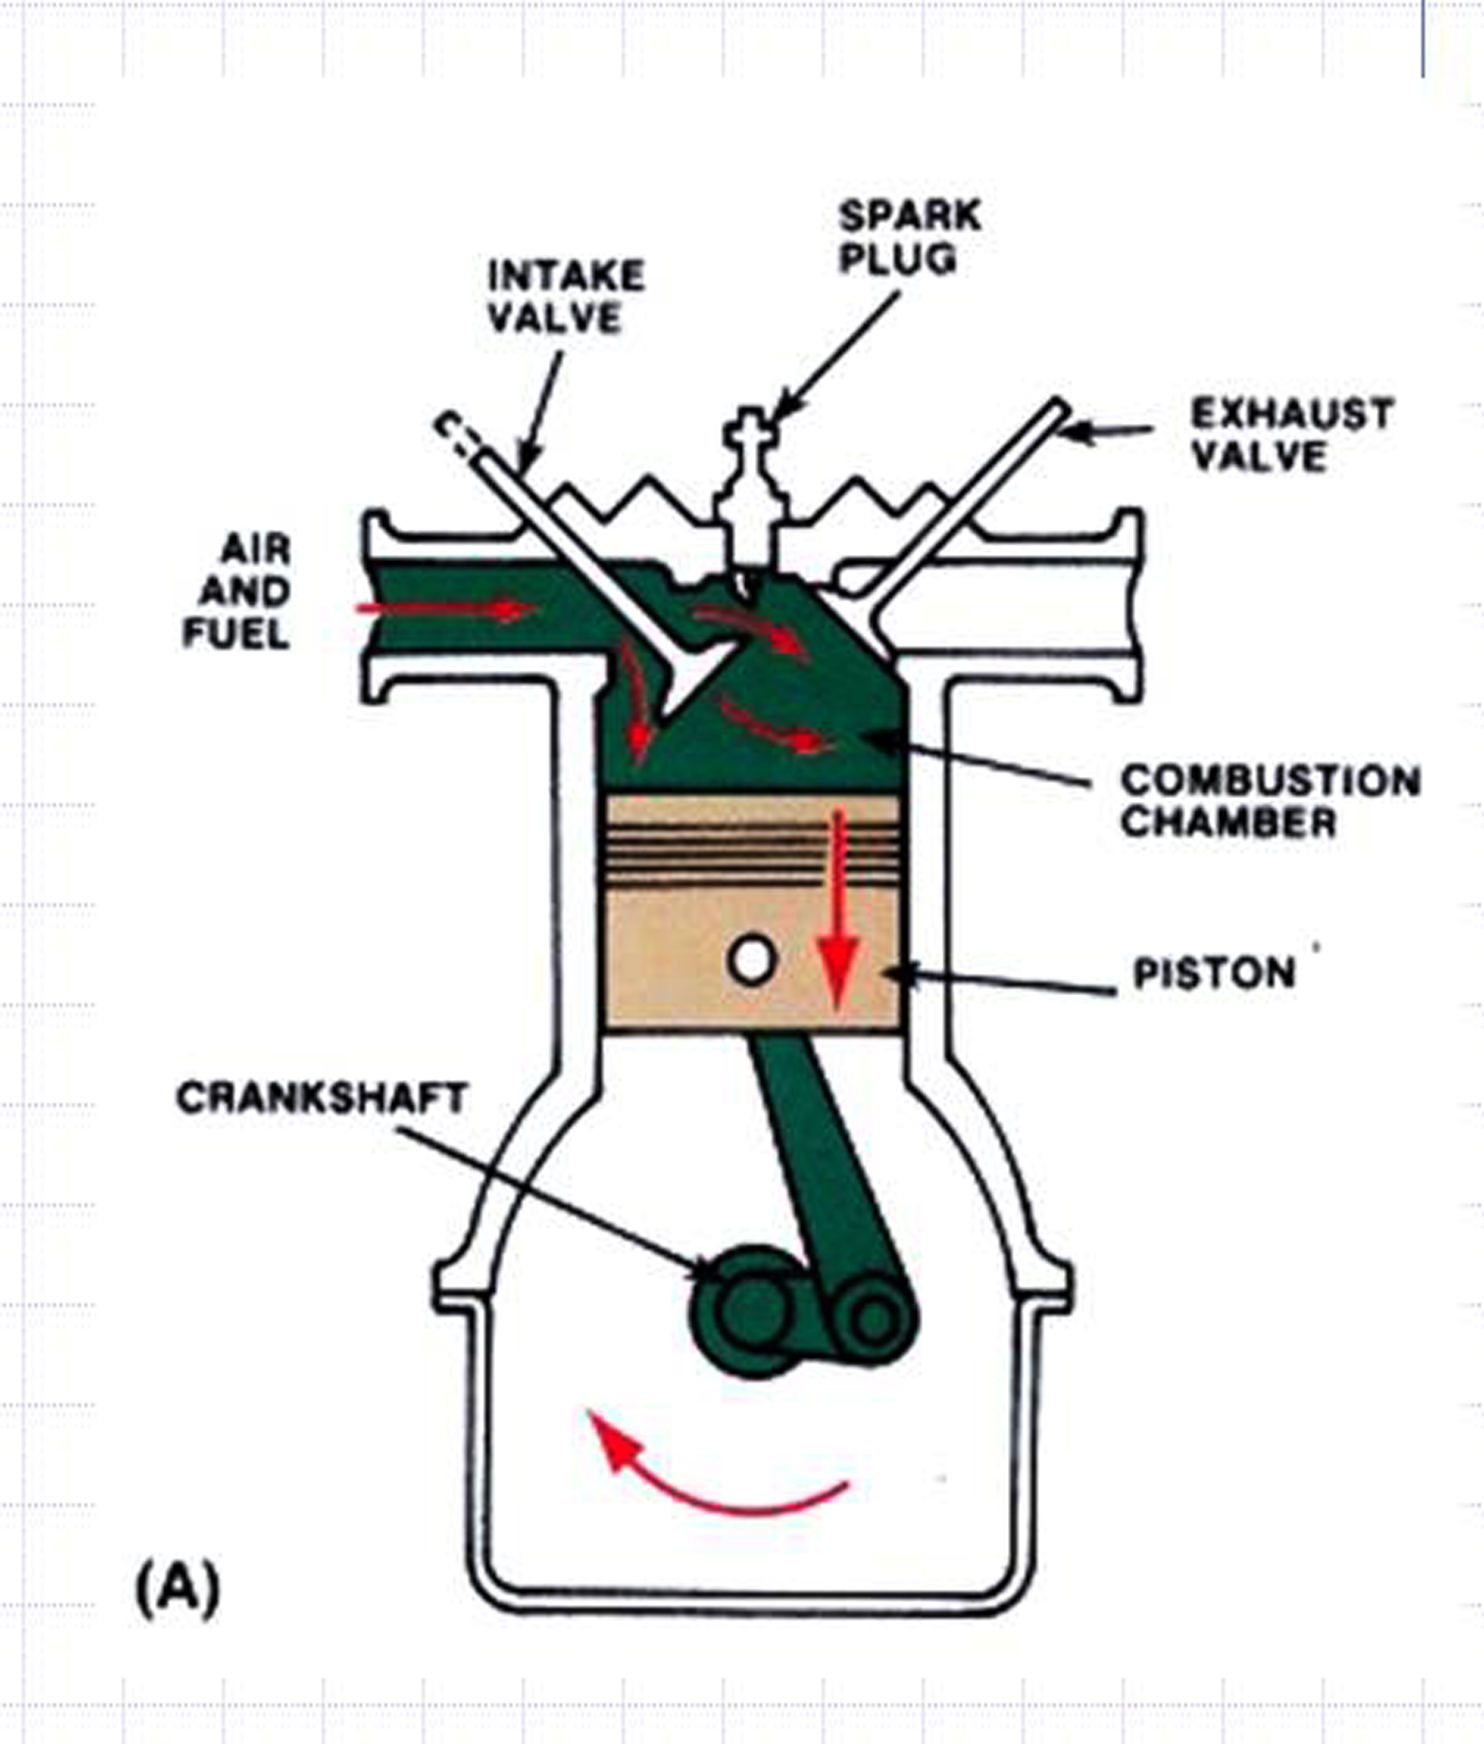 four stroke engine cycle diagram 24 volt transformer wiring crankshaft air filter